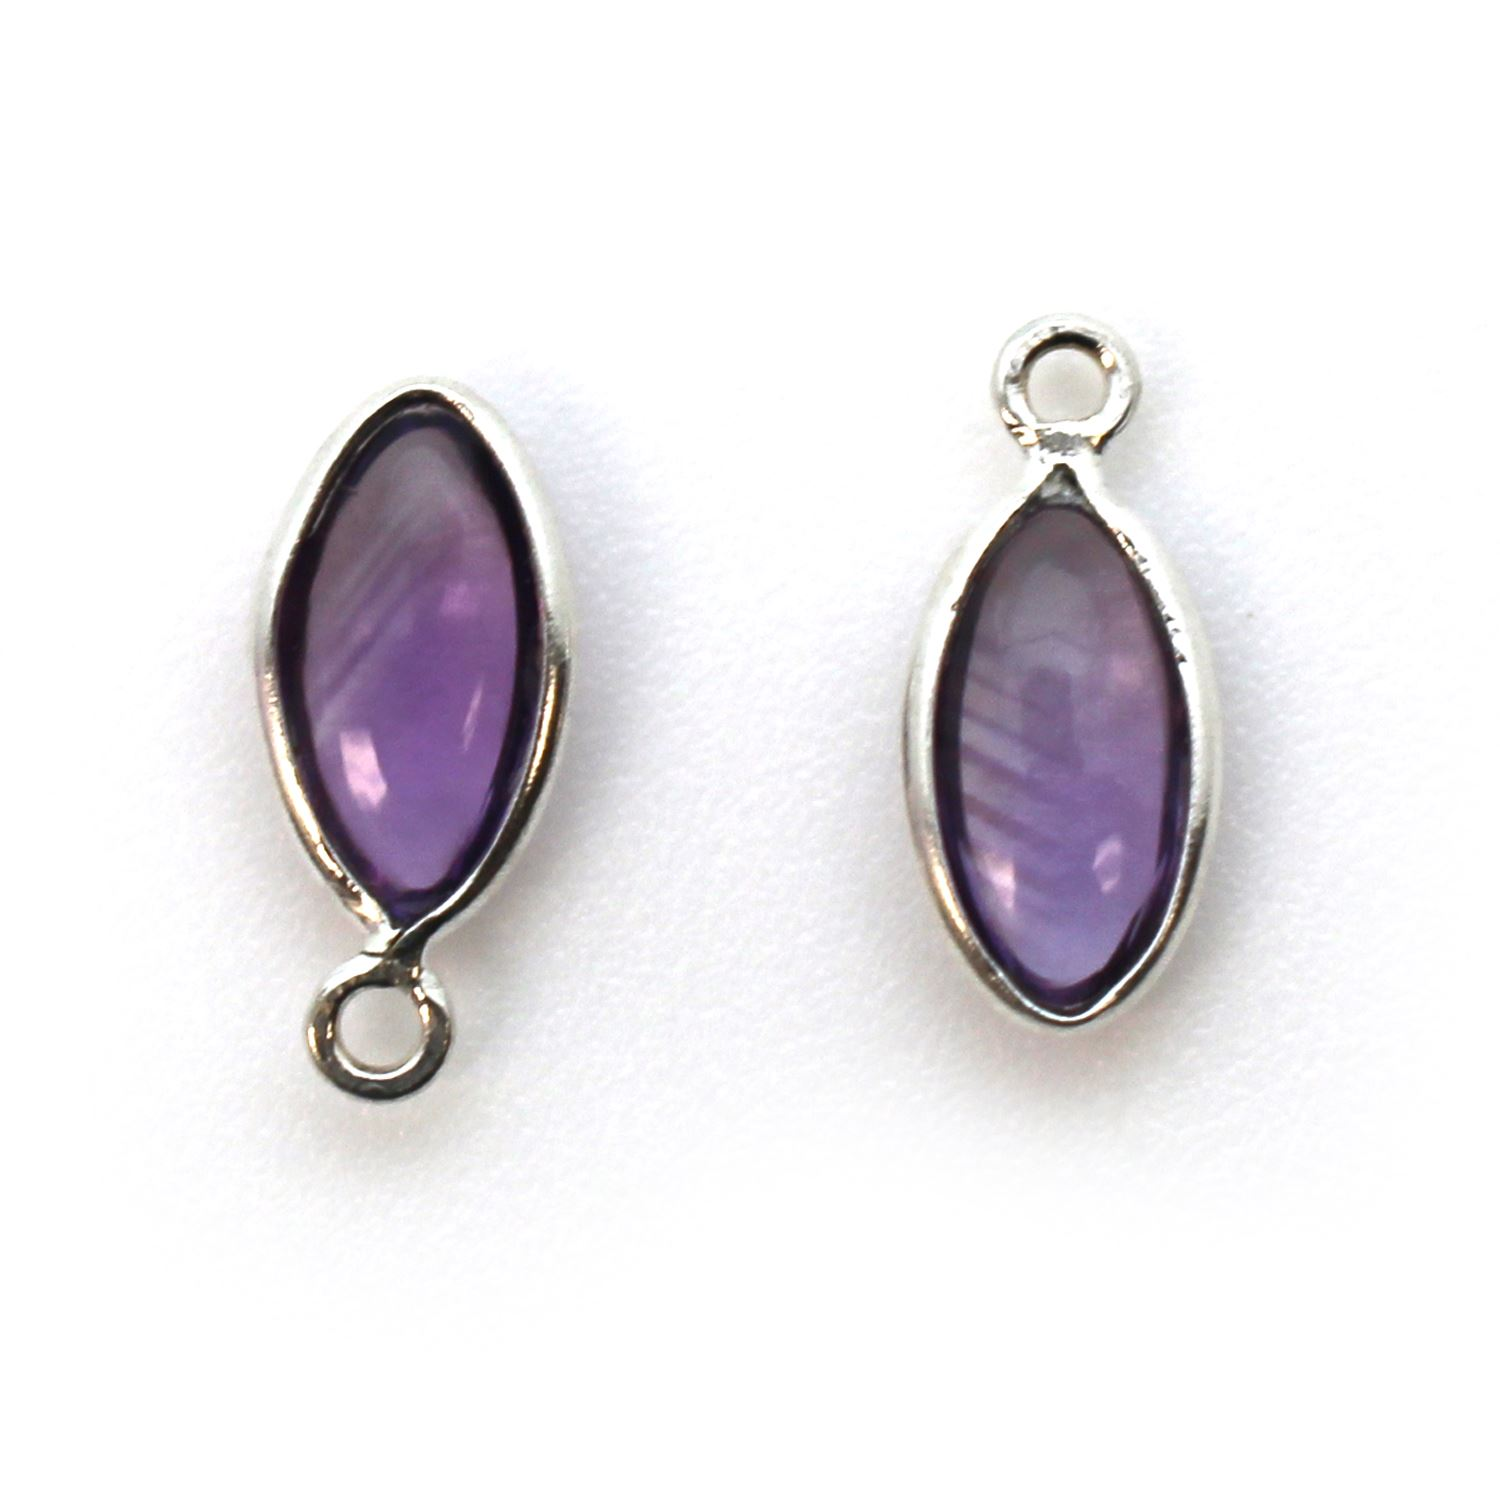 Bezel Charm Pendant - Sterling Silver Charm - Natural Amethyst -Tiny Marquise Shape -6x13mm